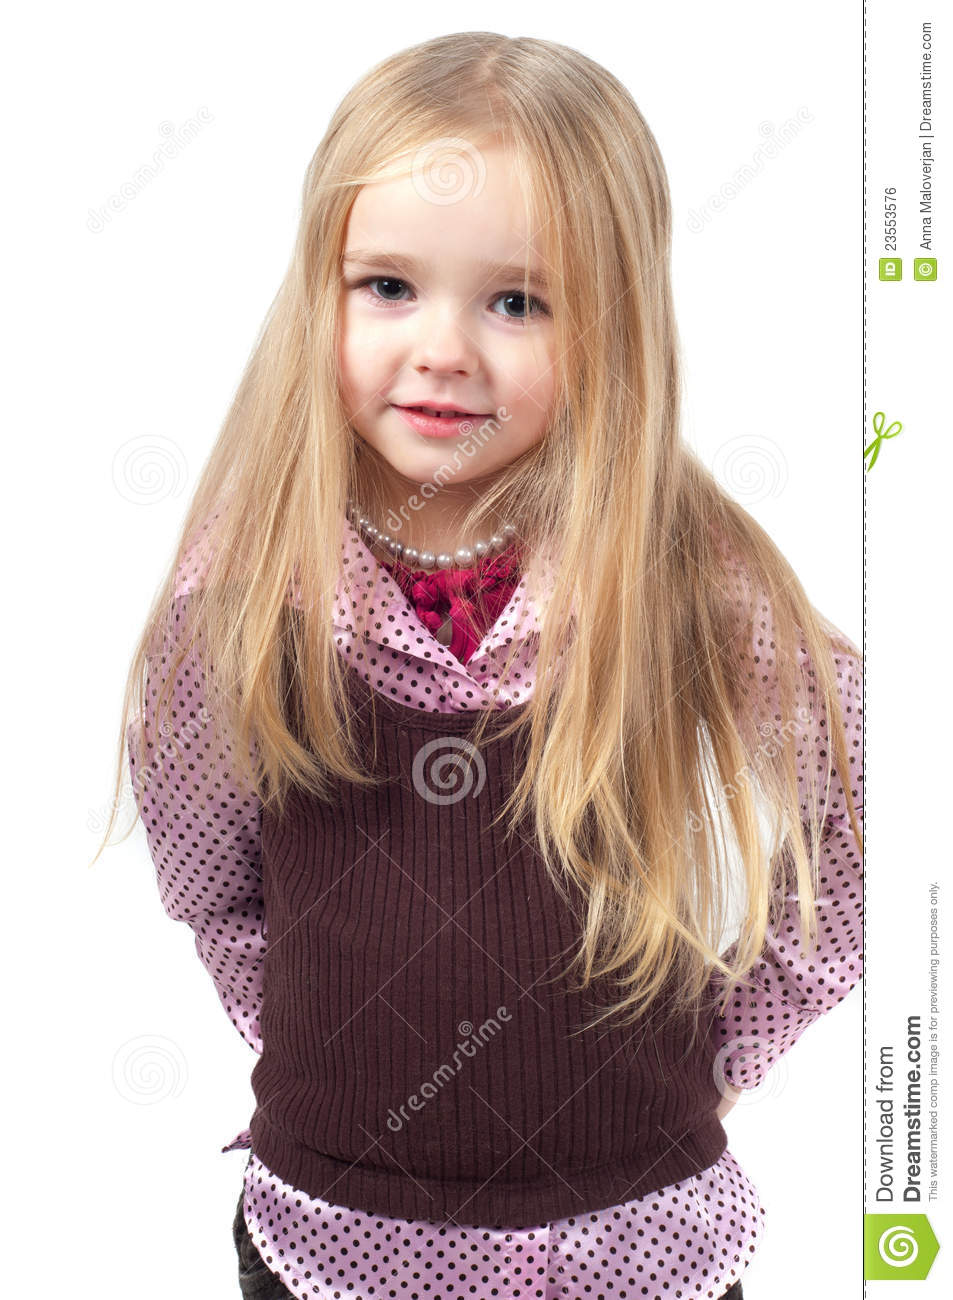 Portrait Of Little Cute Girl With Long Hair Stock Photo - Image of